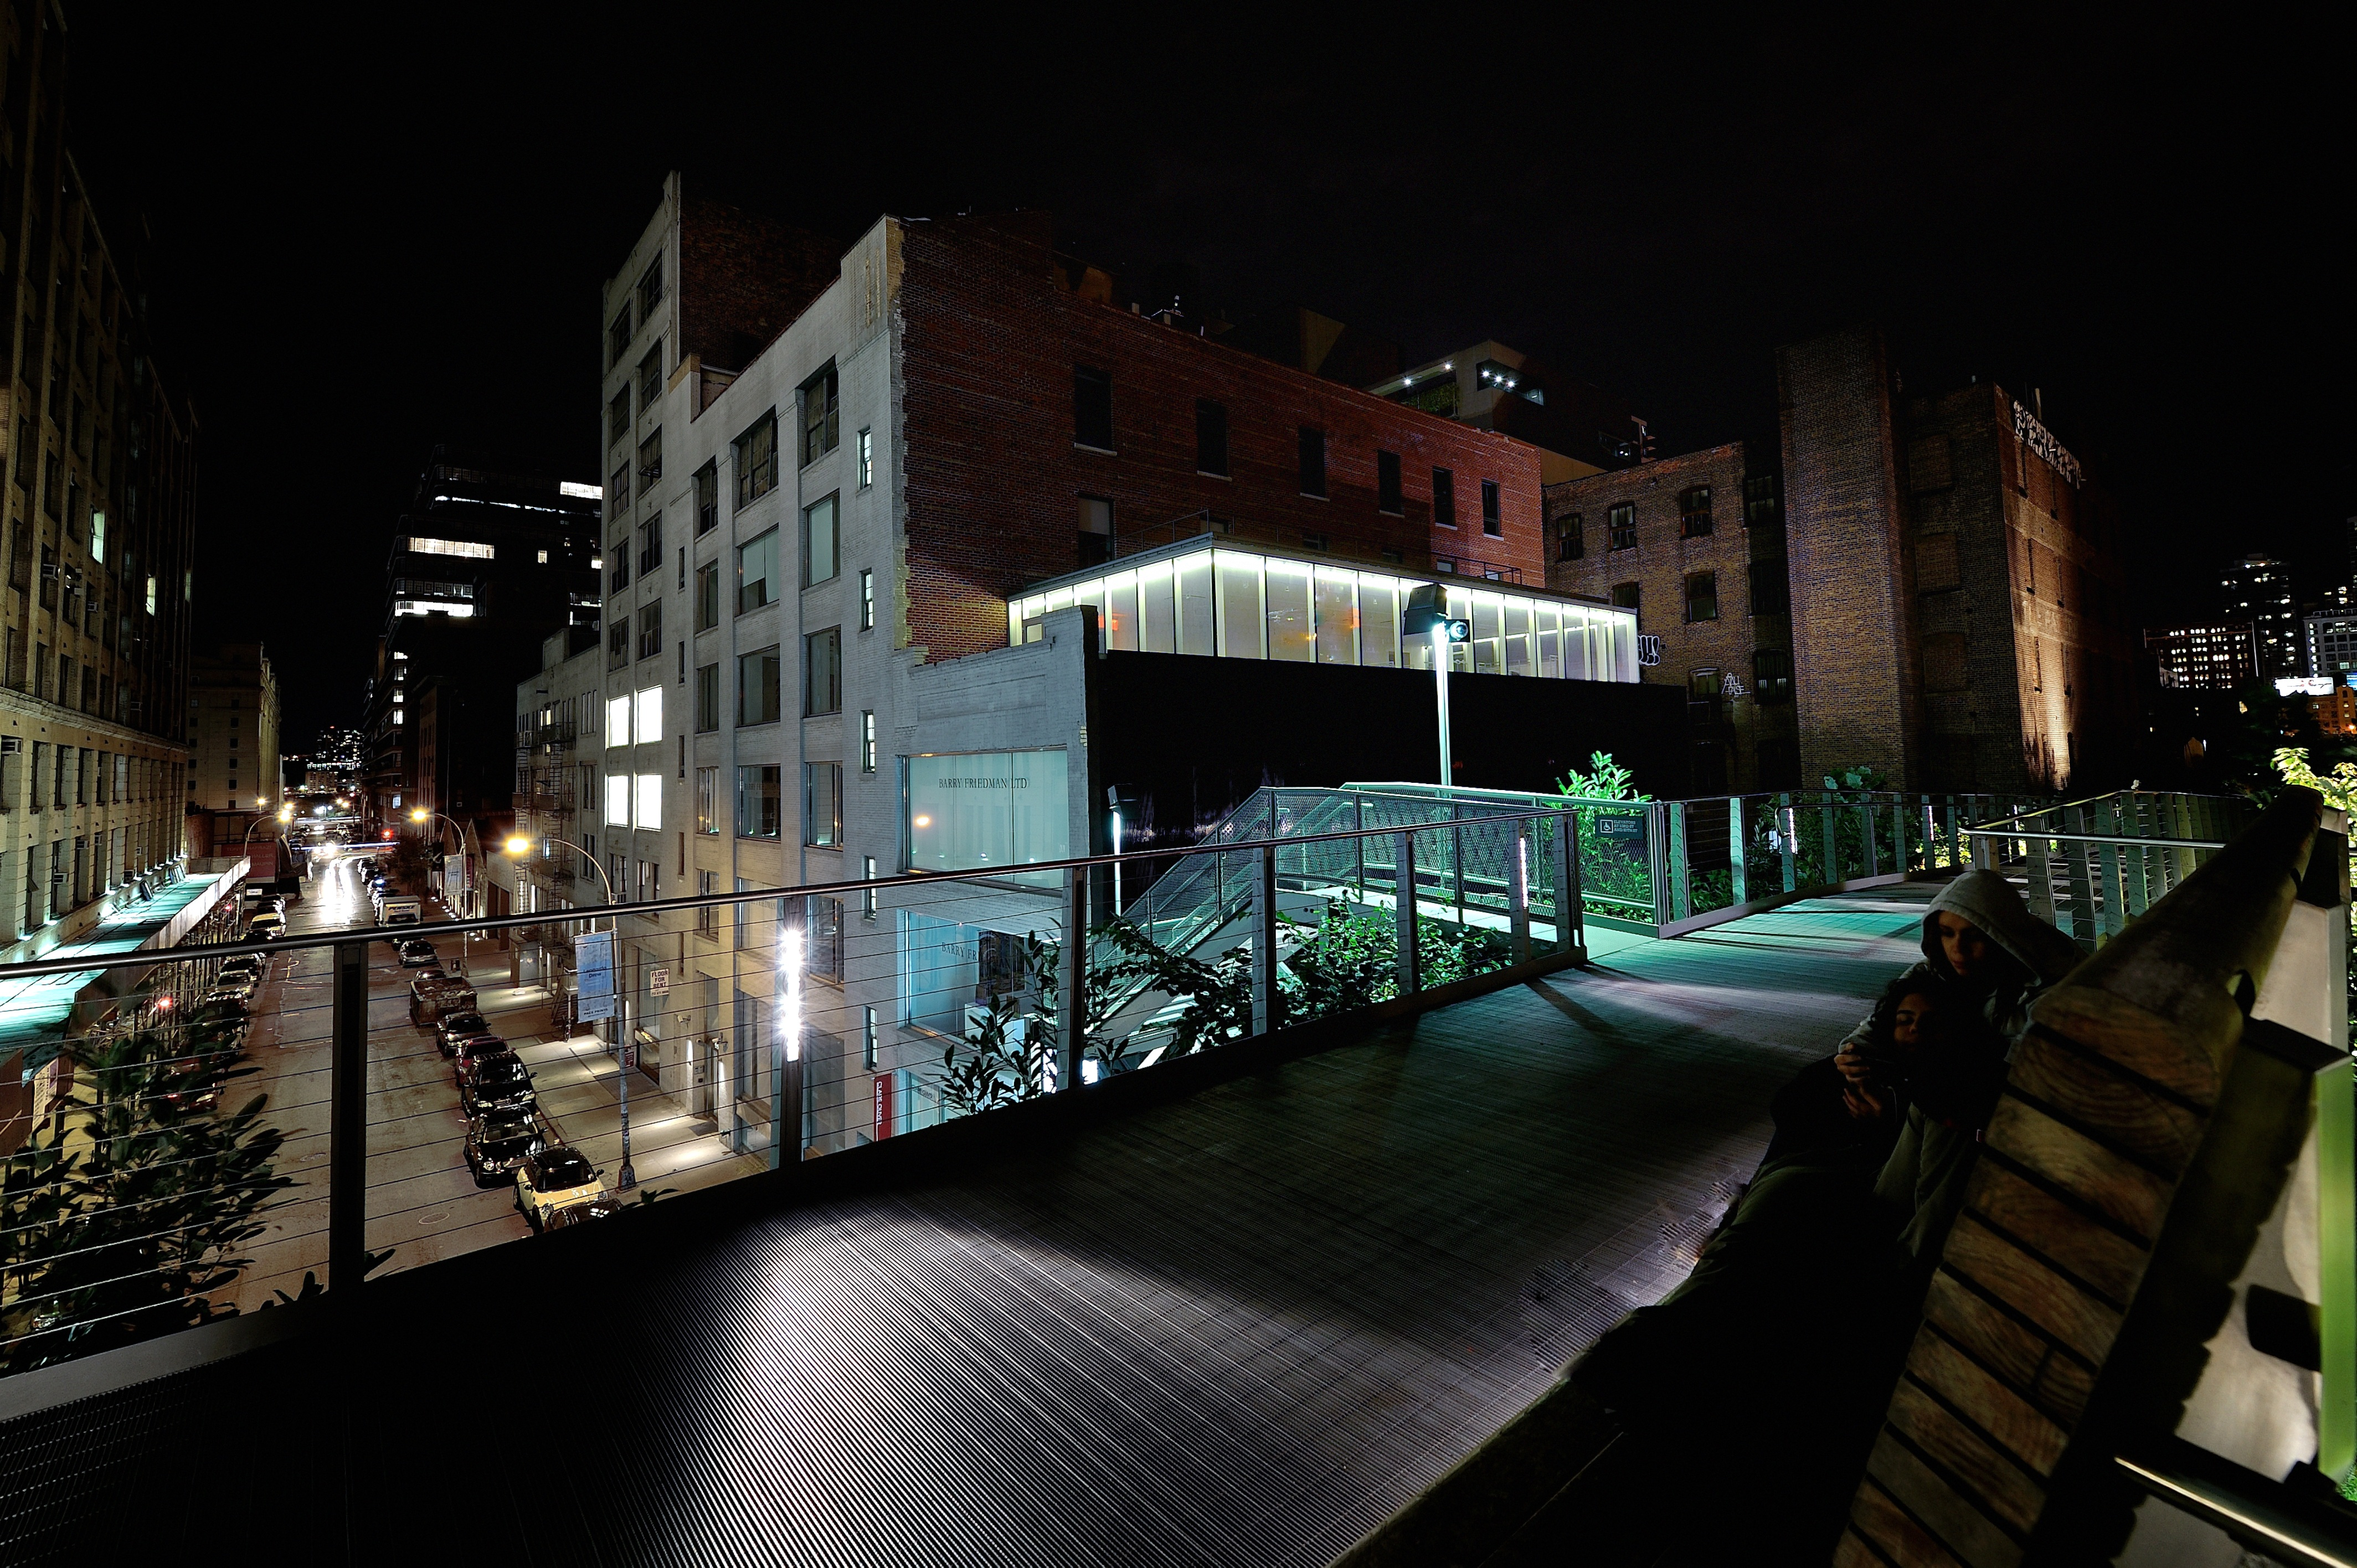 513 West 26th Street Rooftop from the High Line-Nighttime